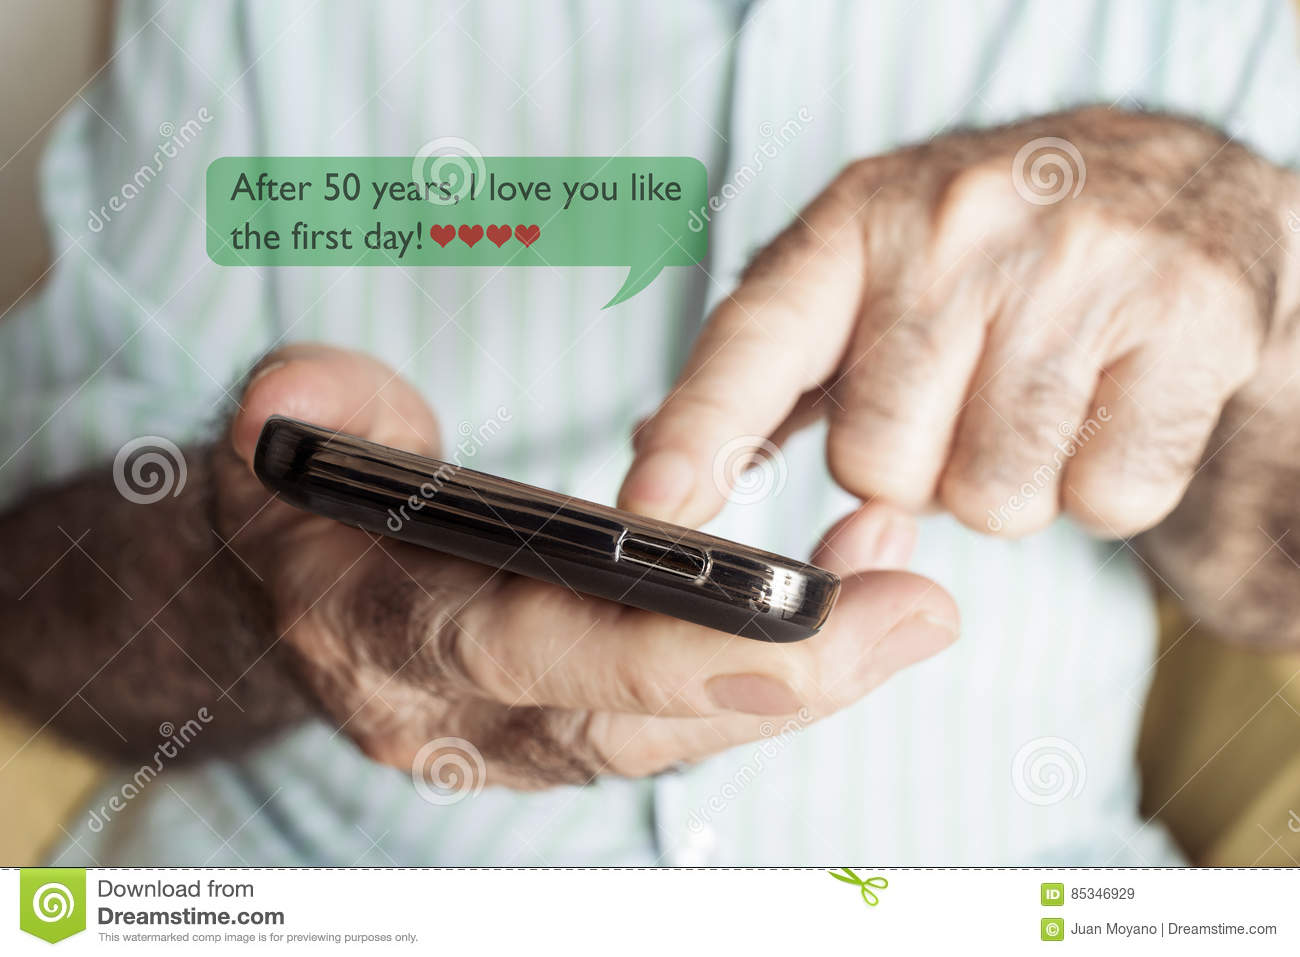 Love after 50 years